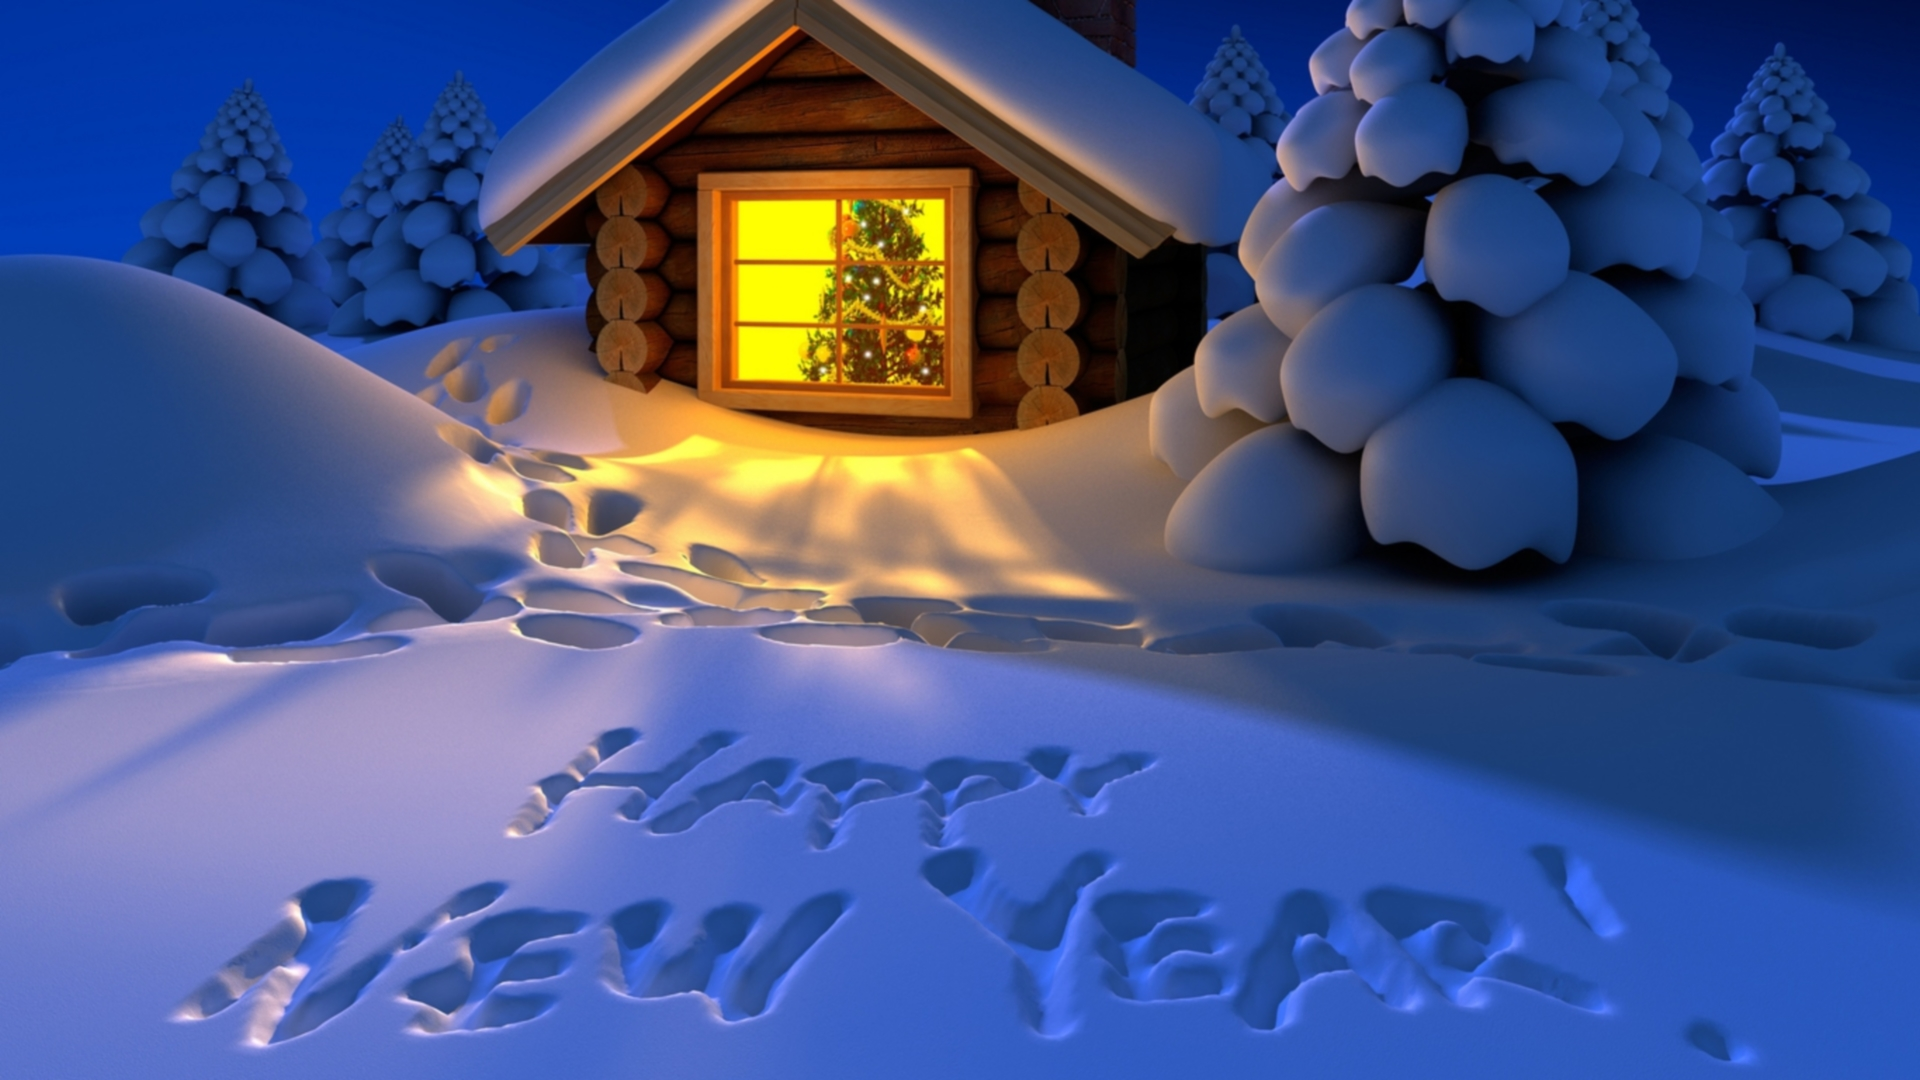 new year full hd wallpaper and background image | 1920x1080 | id:469690